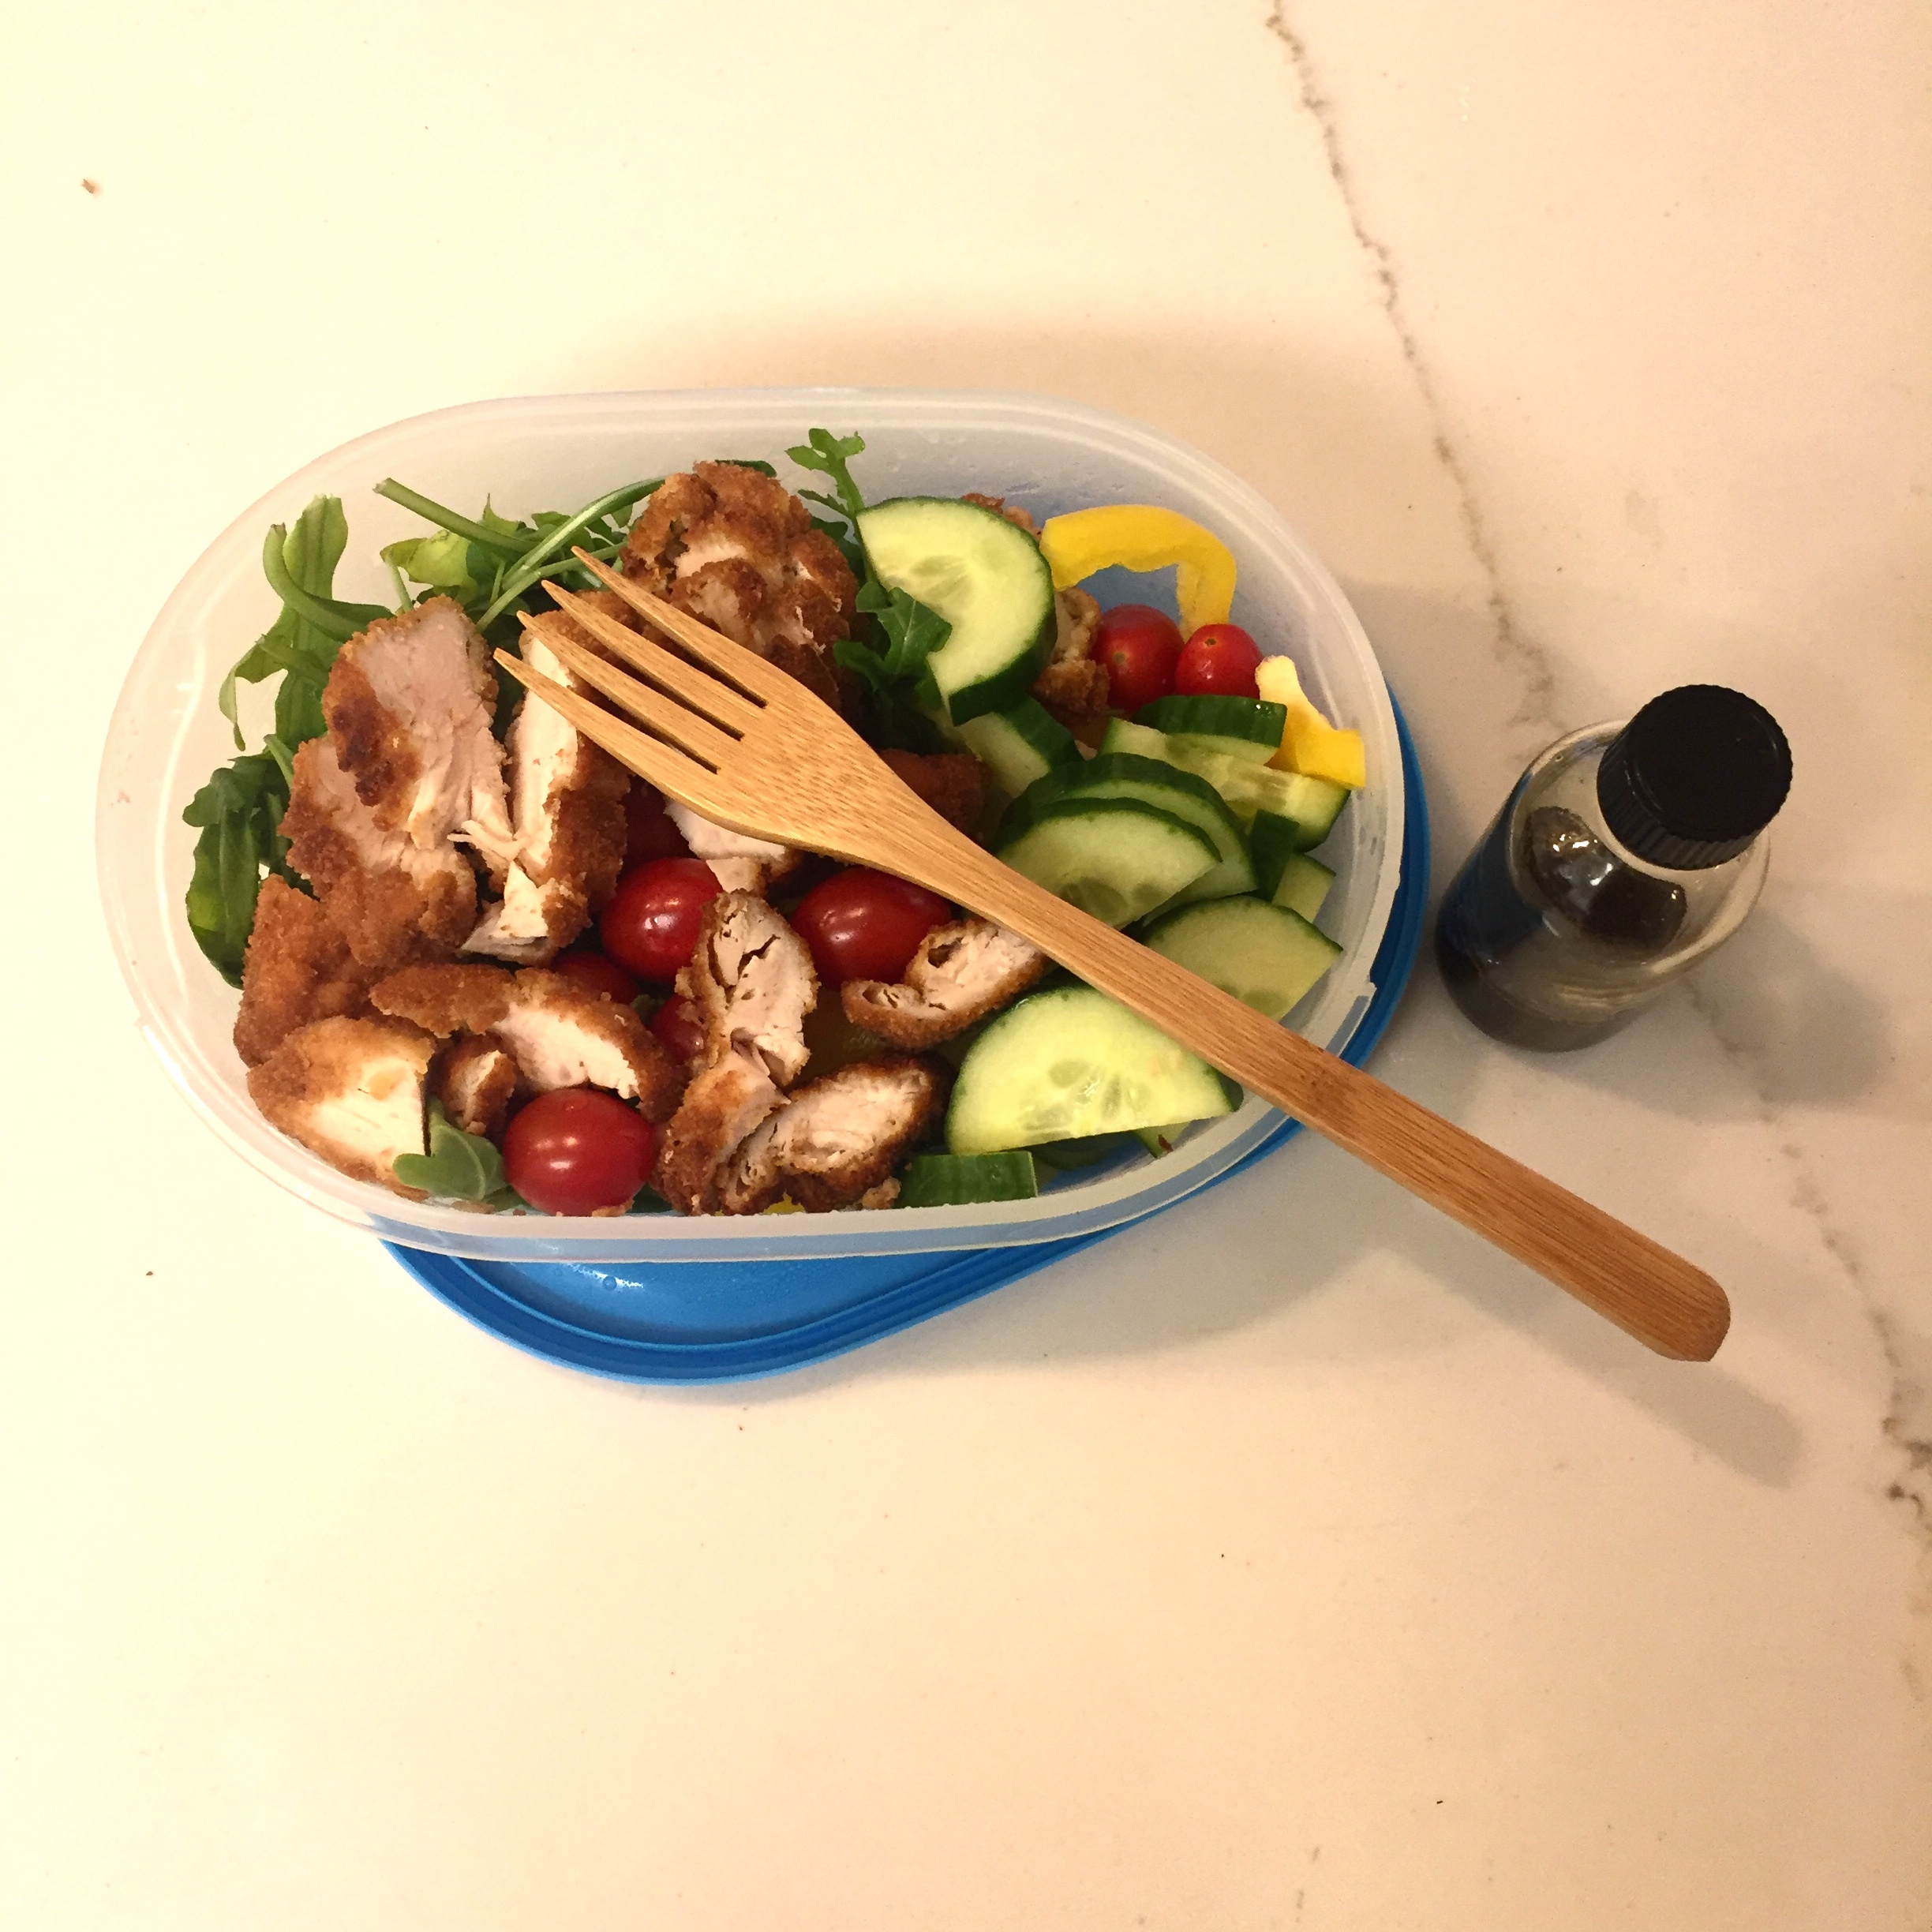 Lunch on the Go - I'd love to store my lunch in a glass container but it's unfortunately too heavy. These simple containers from Ikea do the trick and paired with my bamboo utensils (super lightweight), I've got the best home lunch in town. The mini glass bottle is ideal for salad dressing - I got it with an elixir inside once and repurposed.